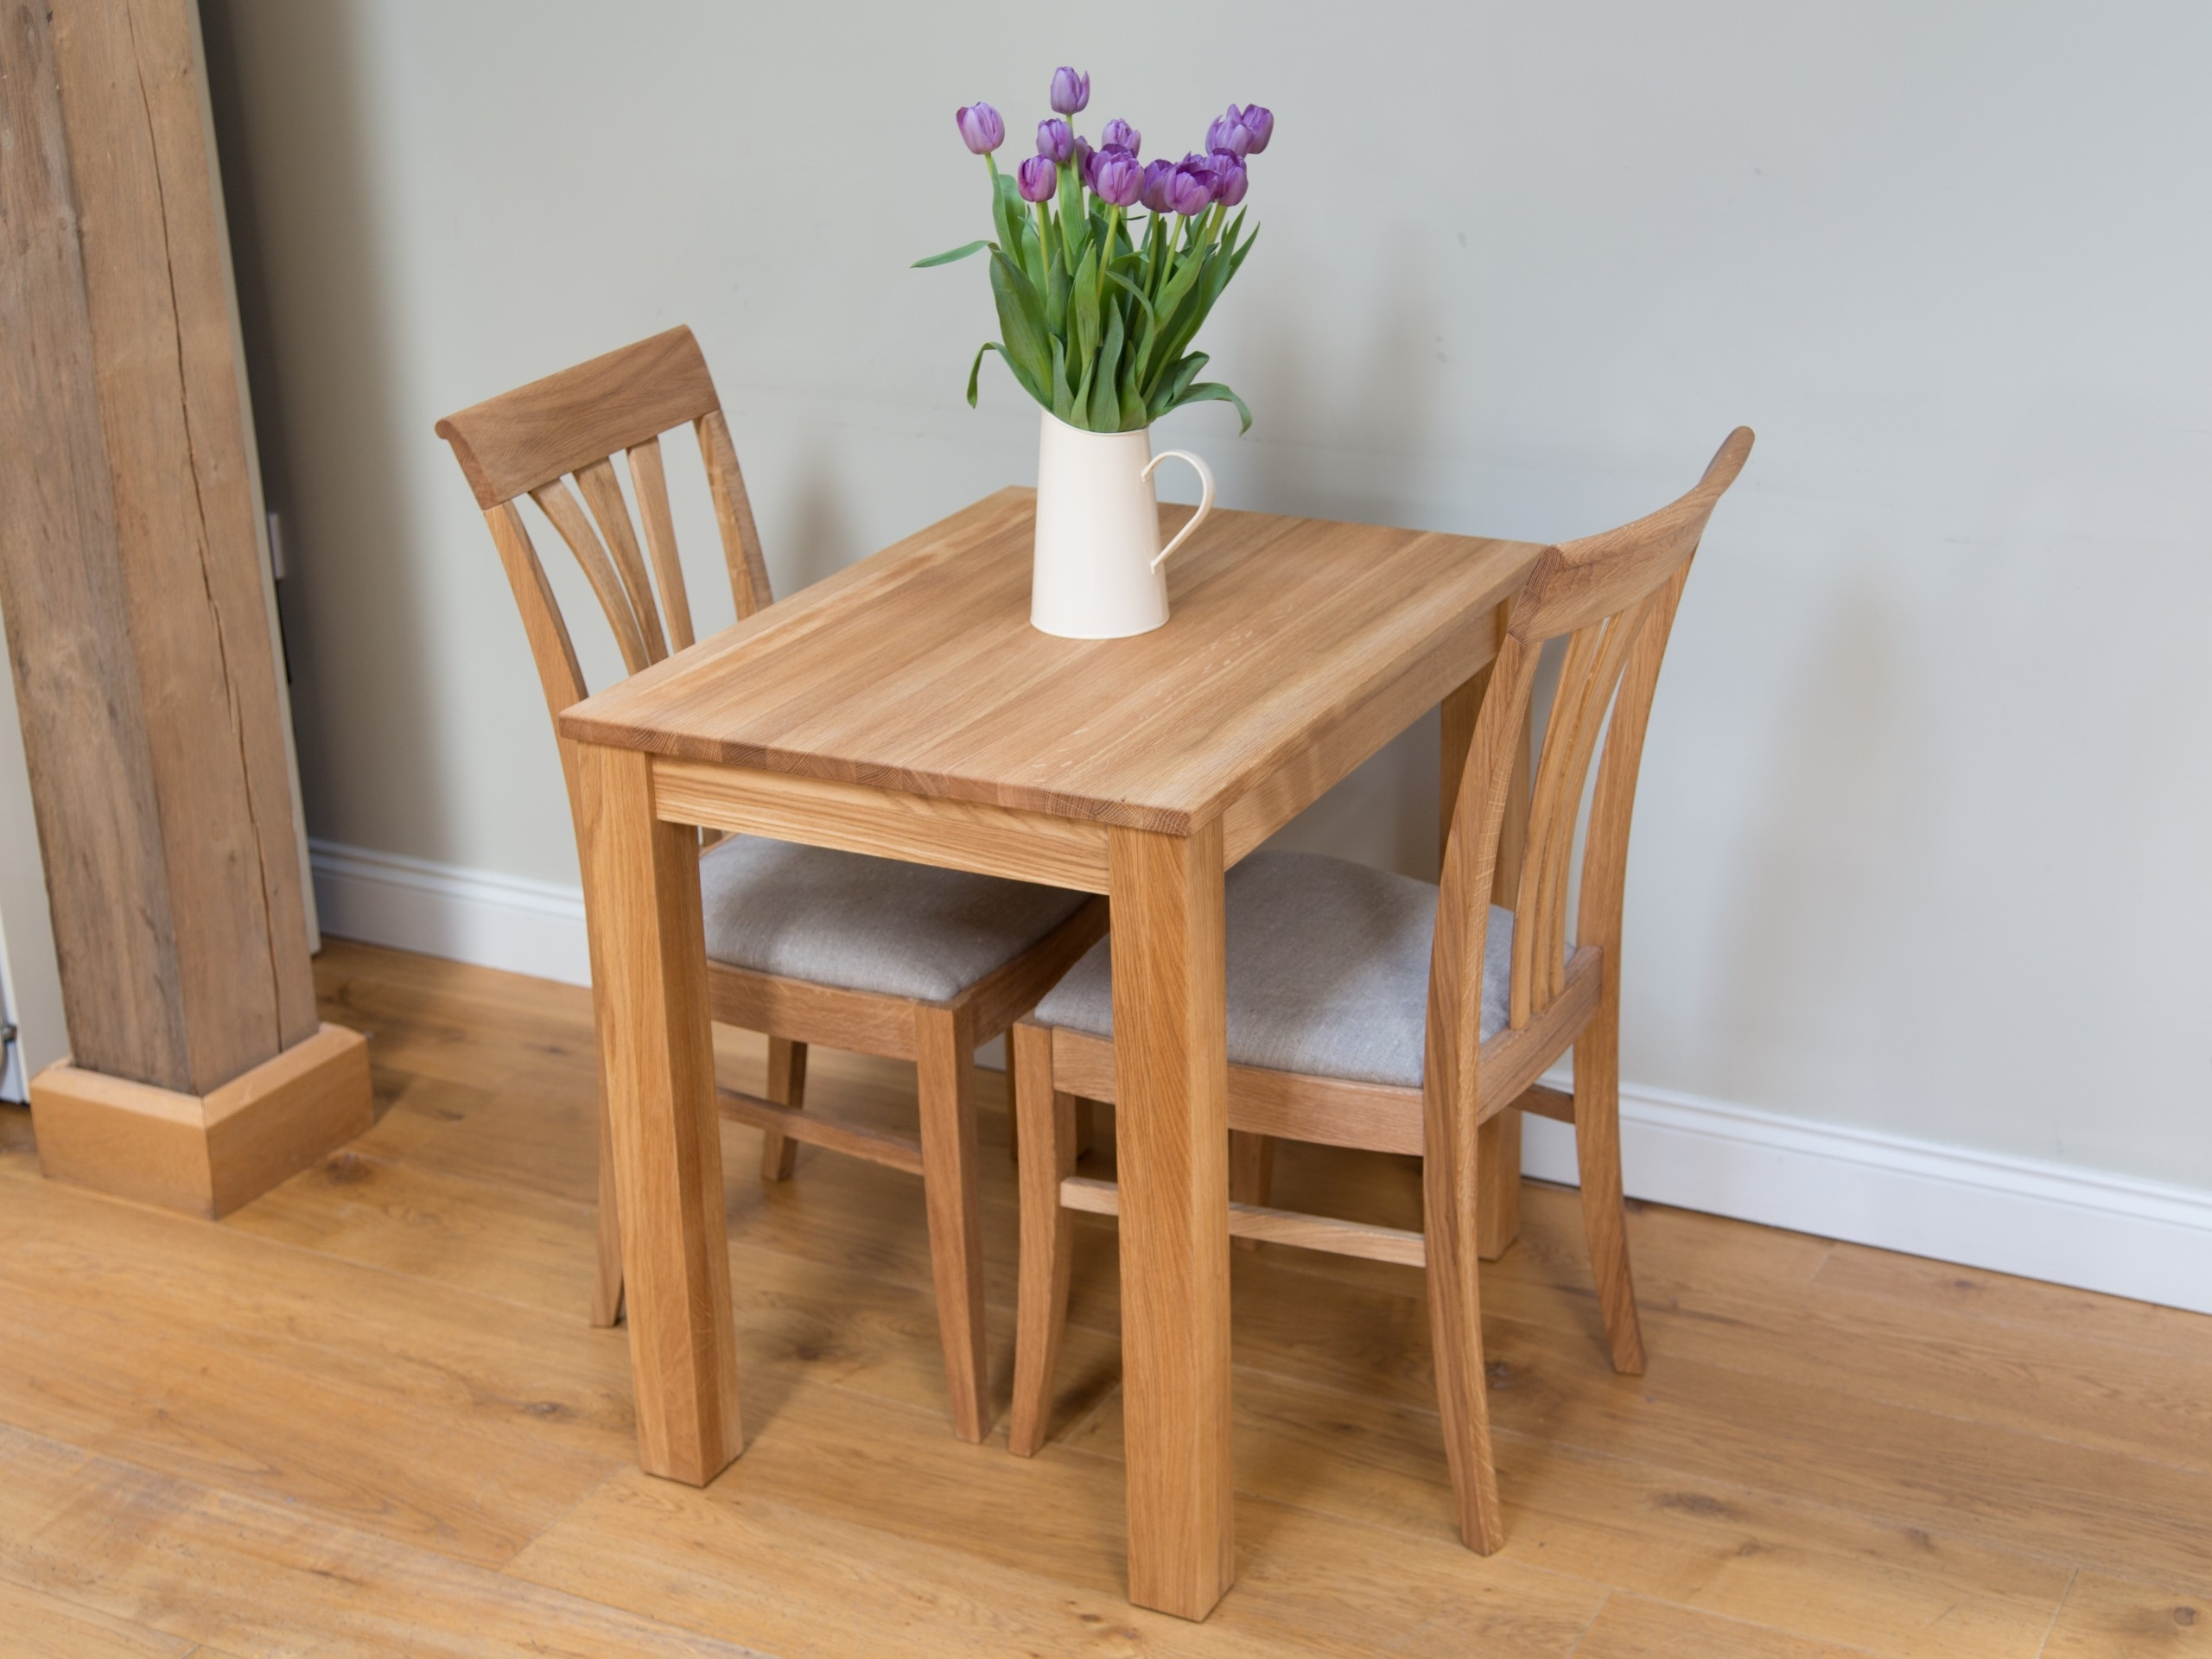 Most Popular Oak Kitchen Table Chair Dining Set From Top Furniture, At A Table Throughout Dining Tables For Two (View 20 of 25)